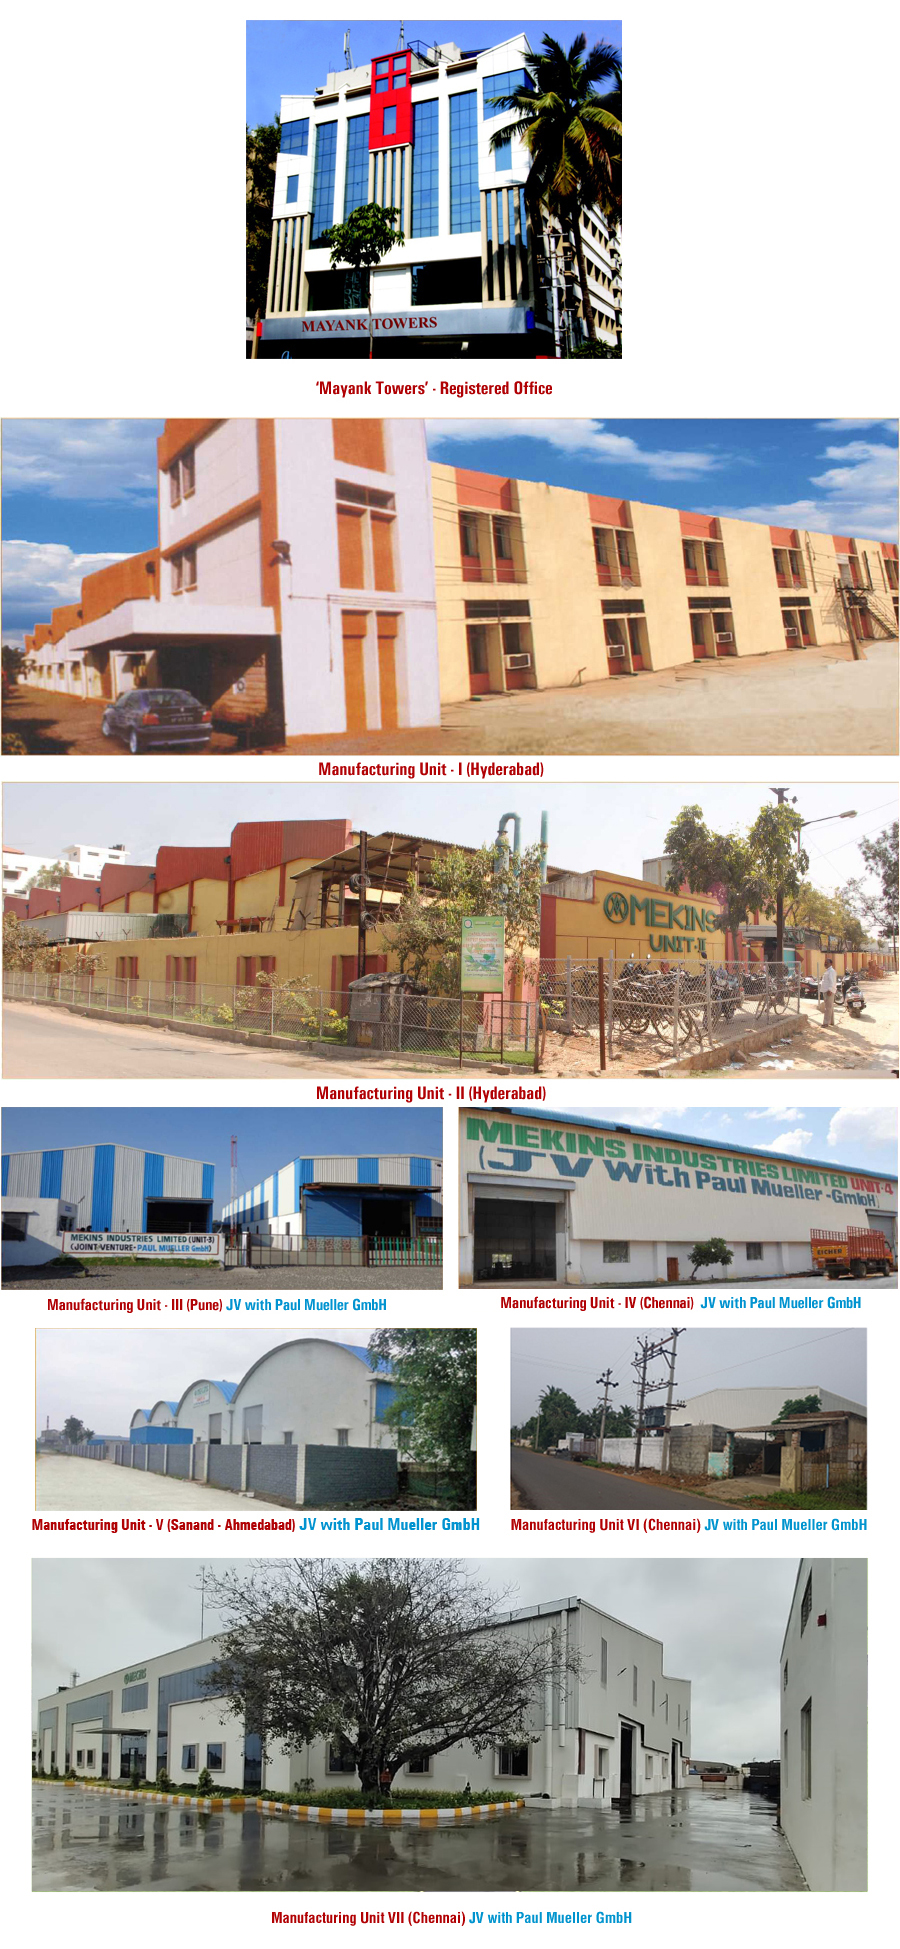 Manufacturing Unit 1 & 2, and Mayank Towers Mekins Registered Office